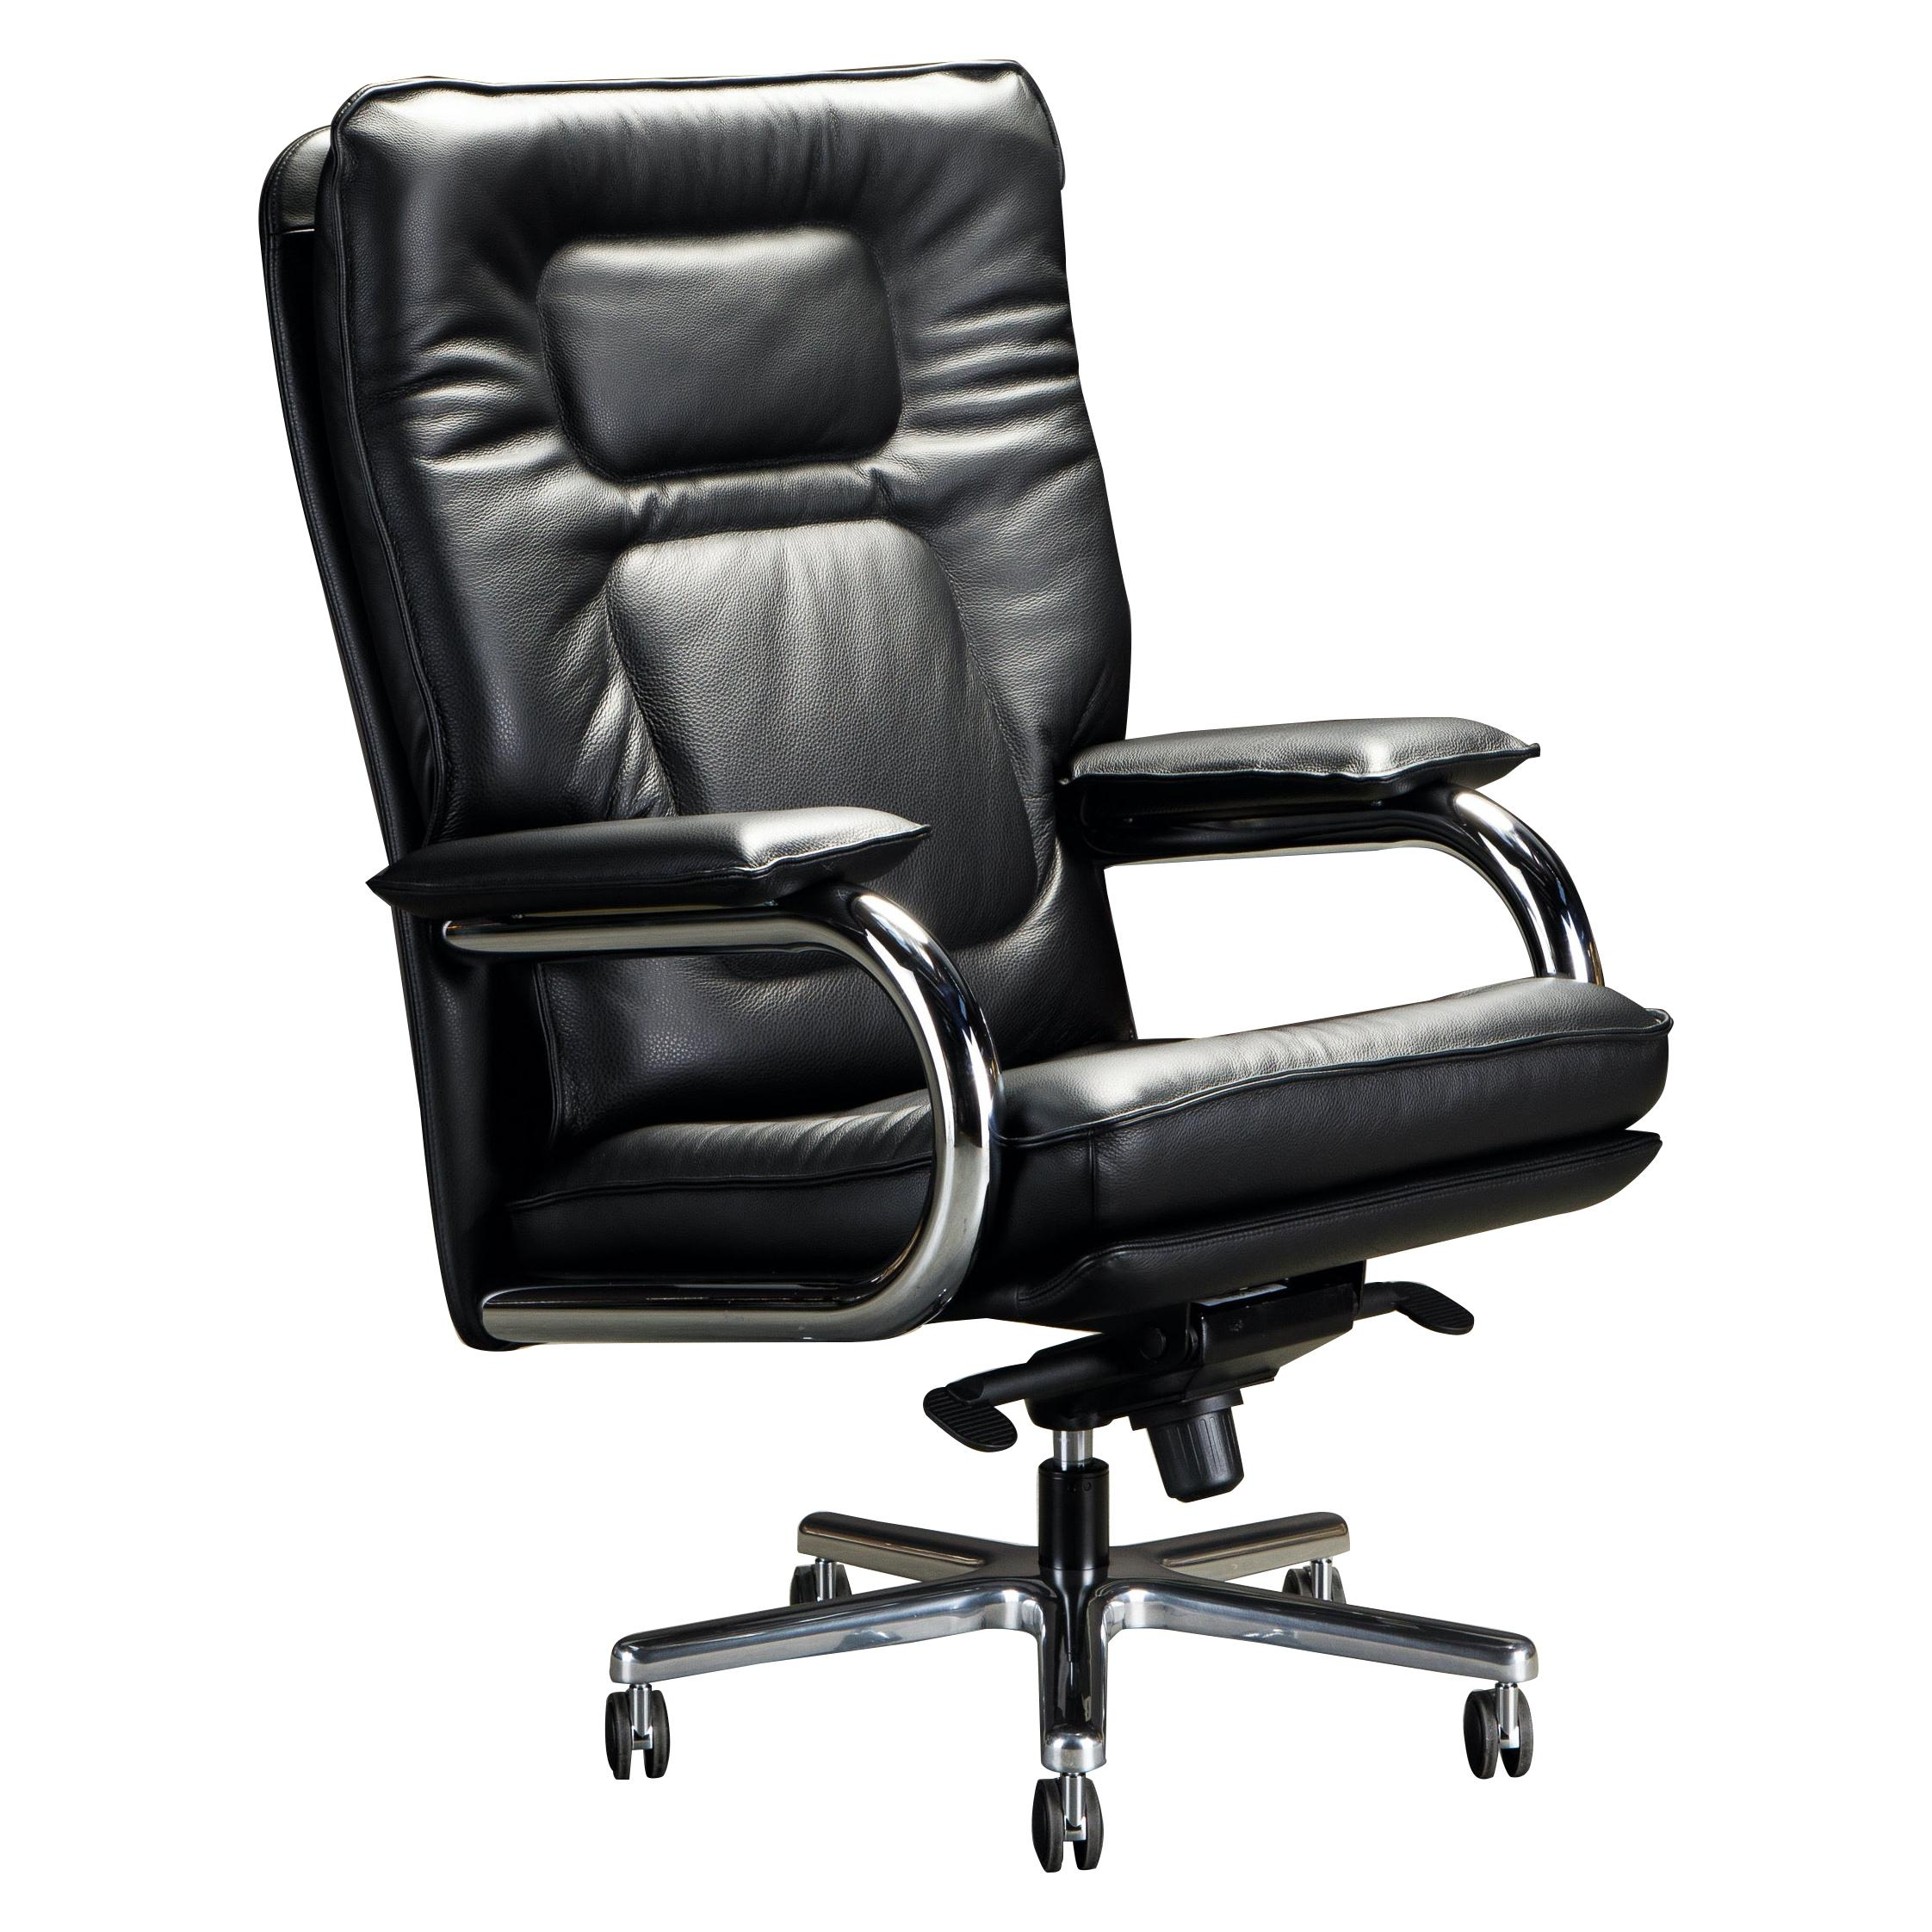 'Big' by Guido Faleschini for i4Mariani Leather Executive Desk Chair, Italy, New